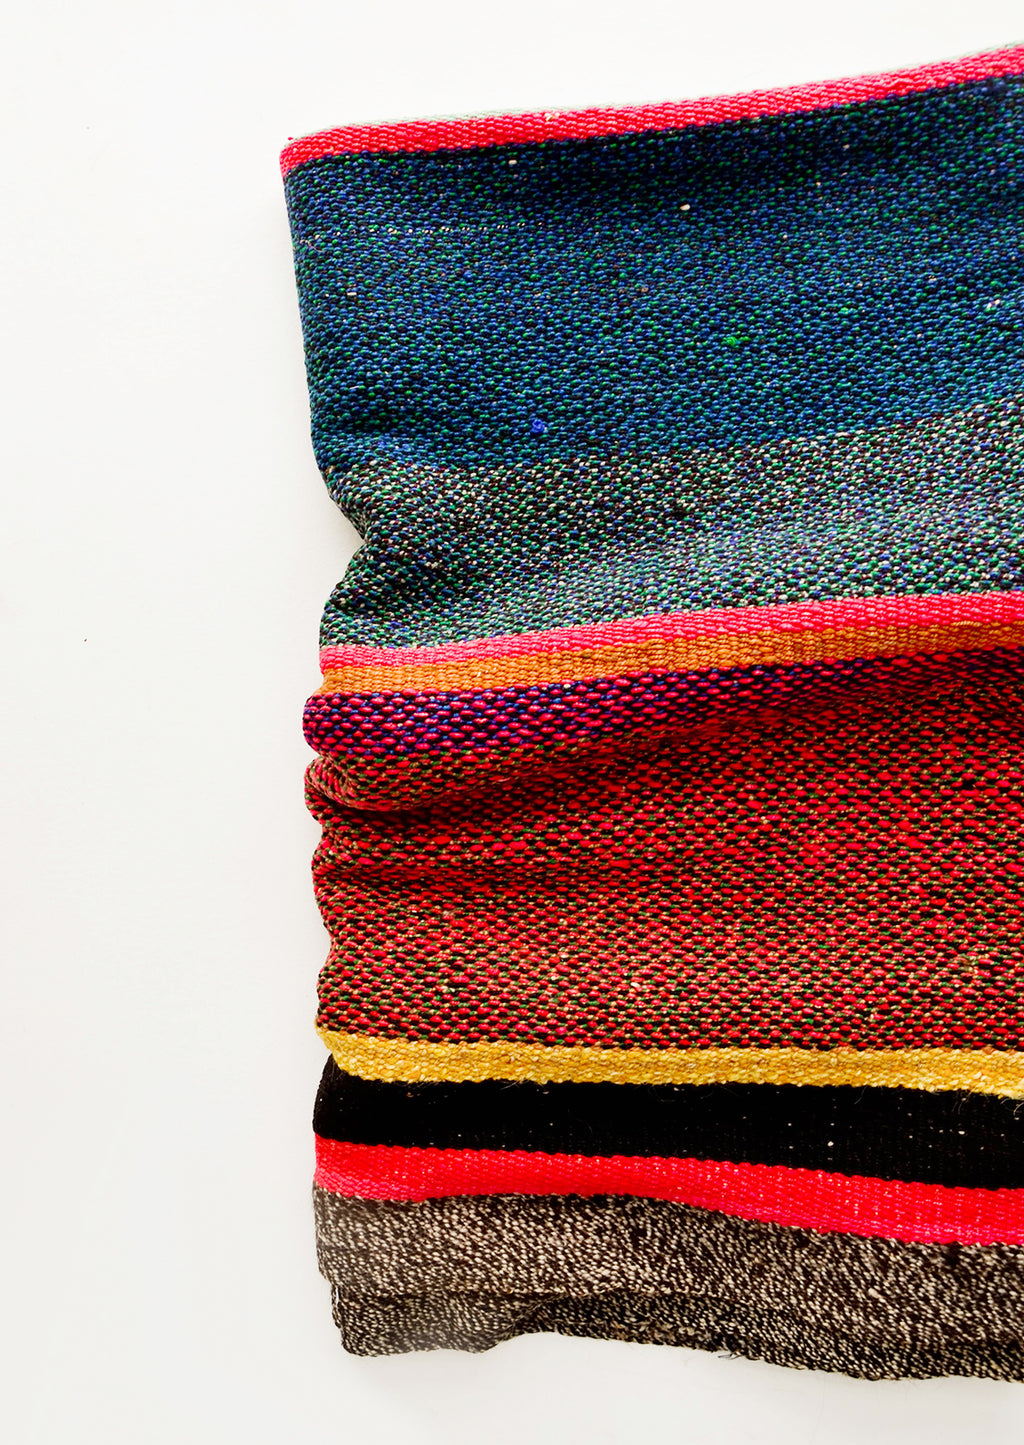 3: Vintage wool textile in striped pattern in a mix of blue, pink, black and yellow